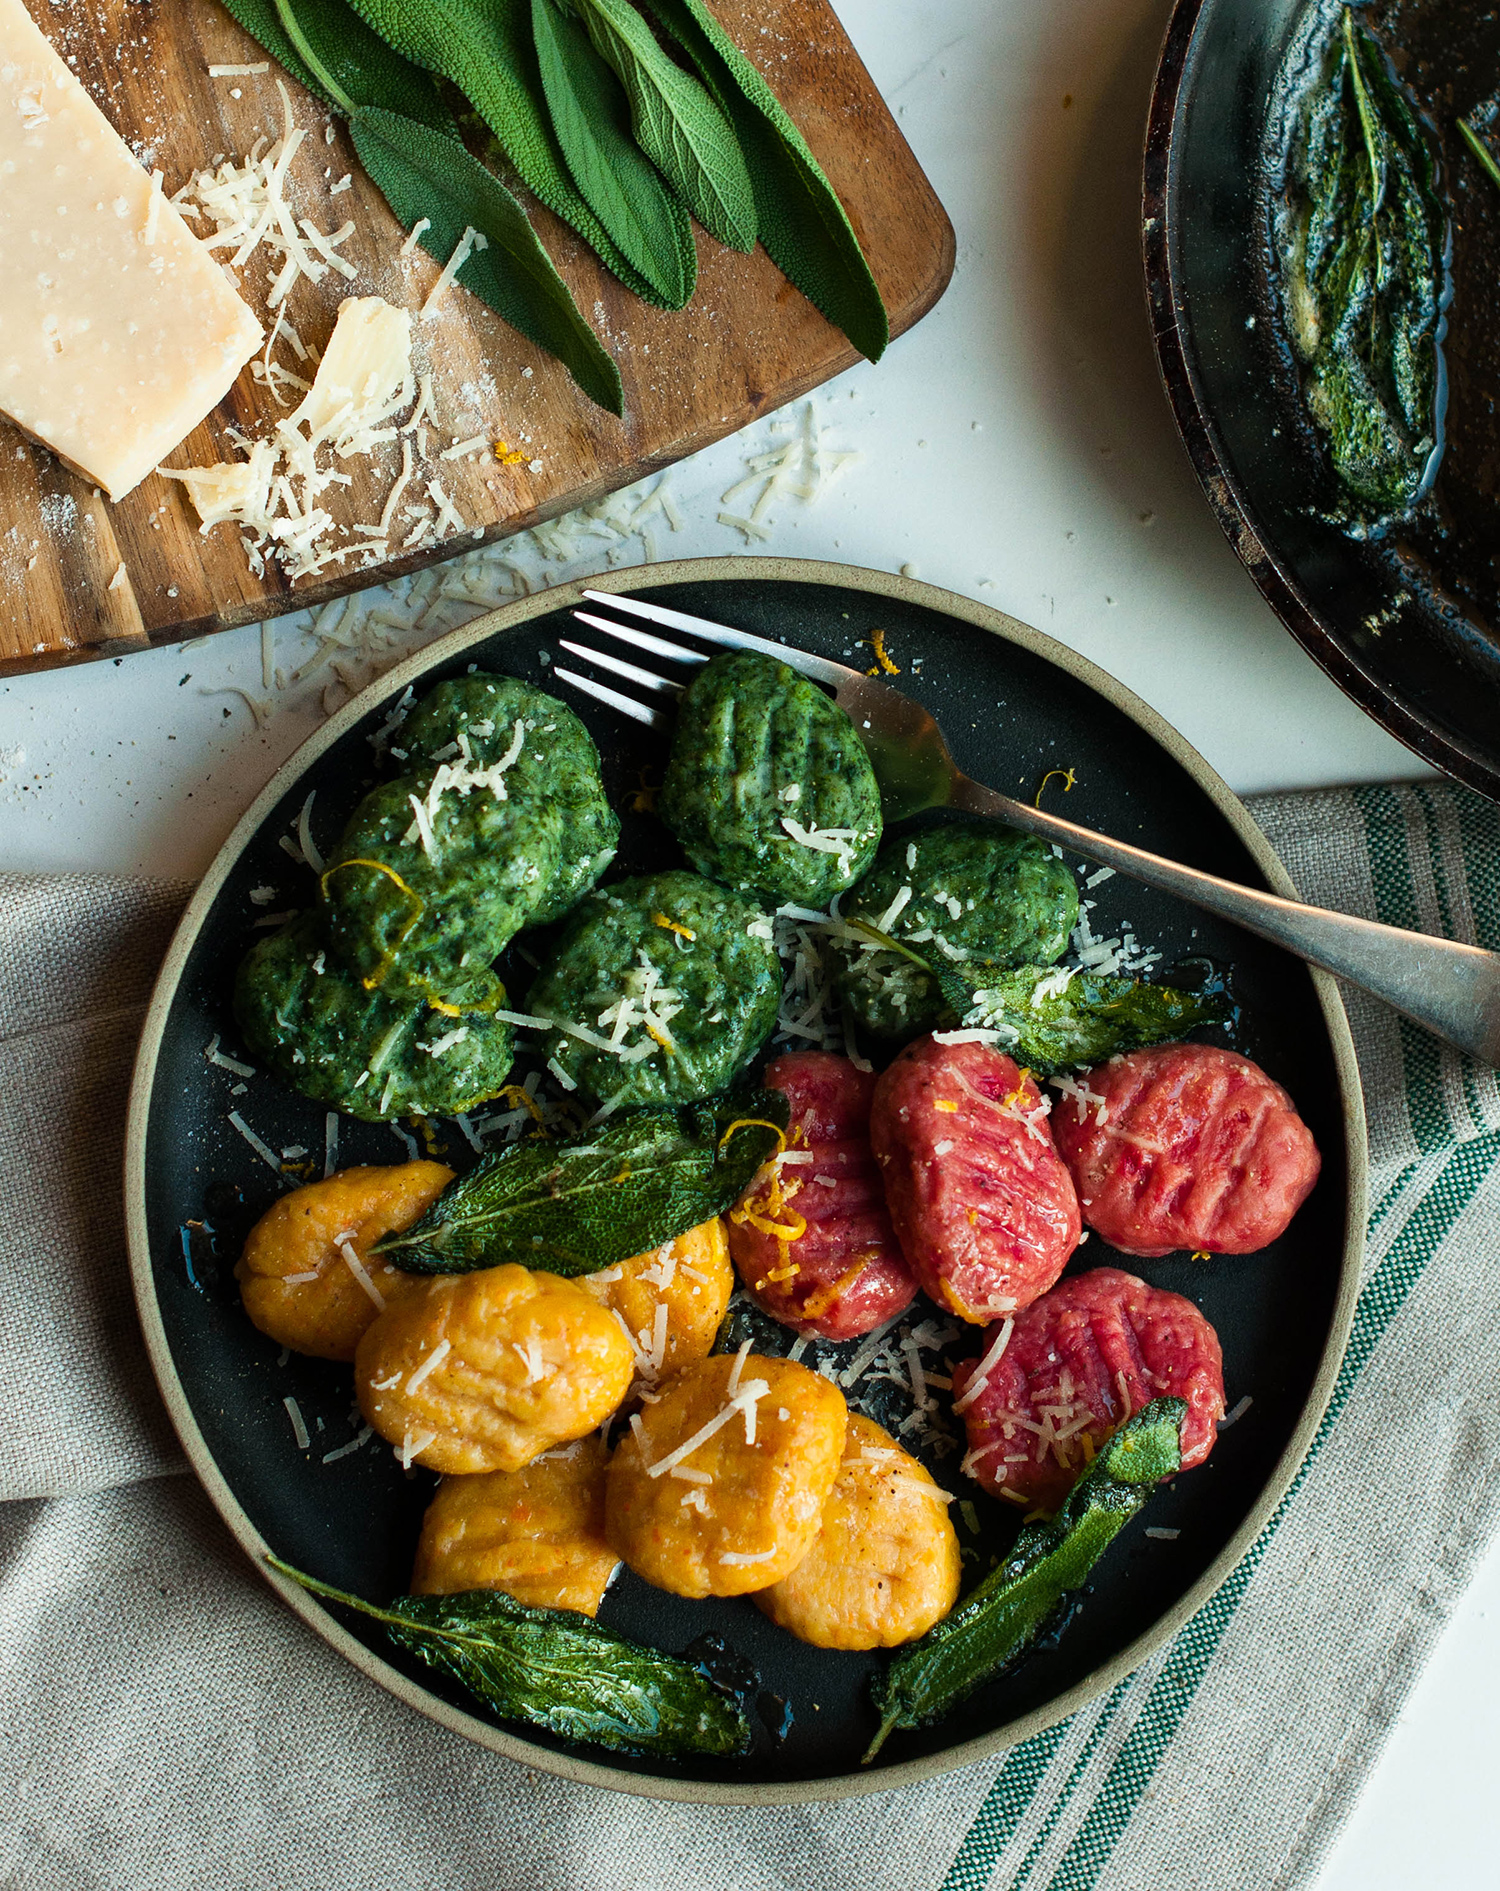 homemade-gnocchi-ricotta-spinach-carrot-beetroot-lea-lou